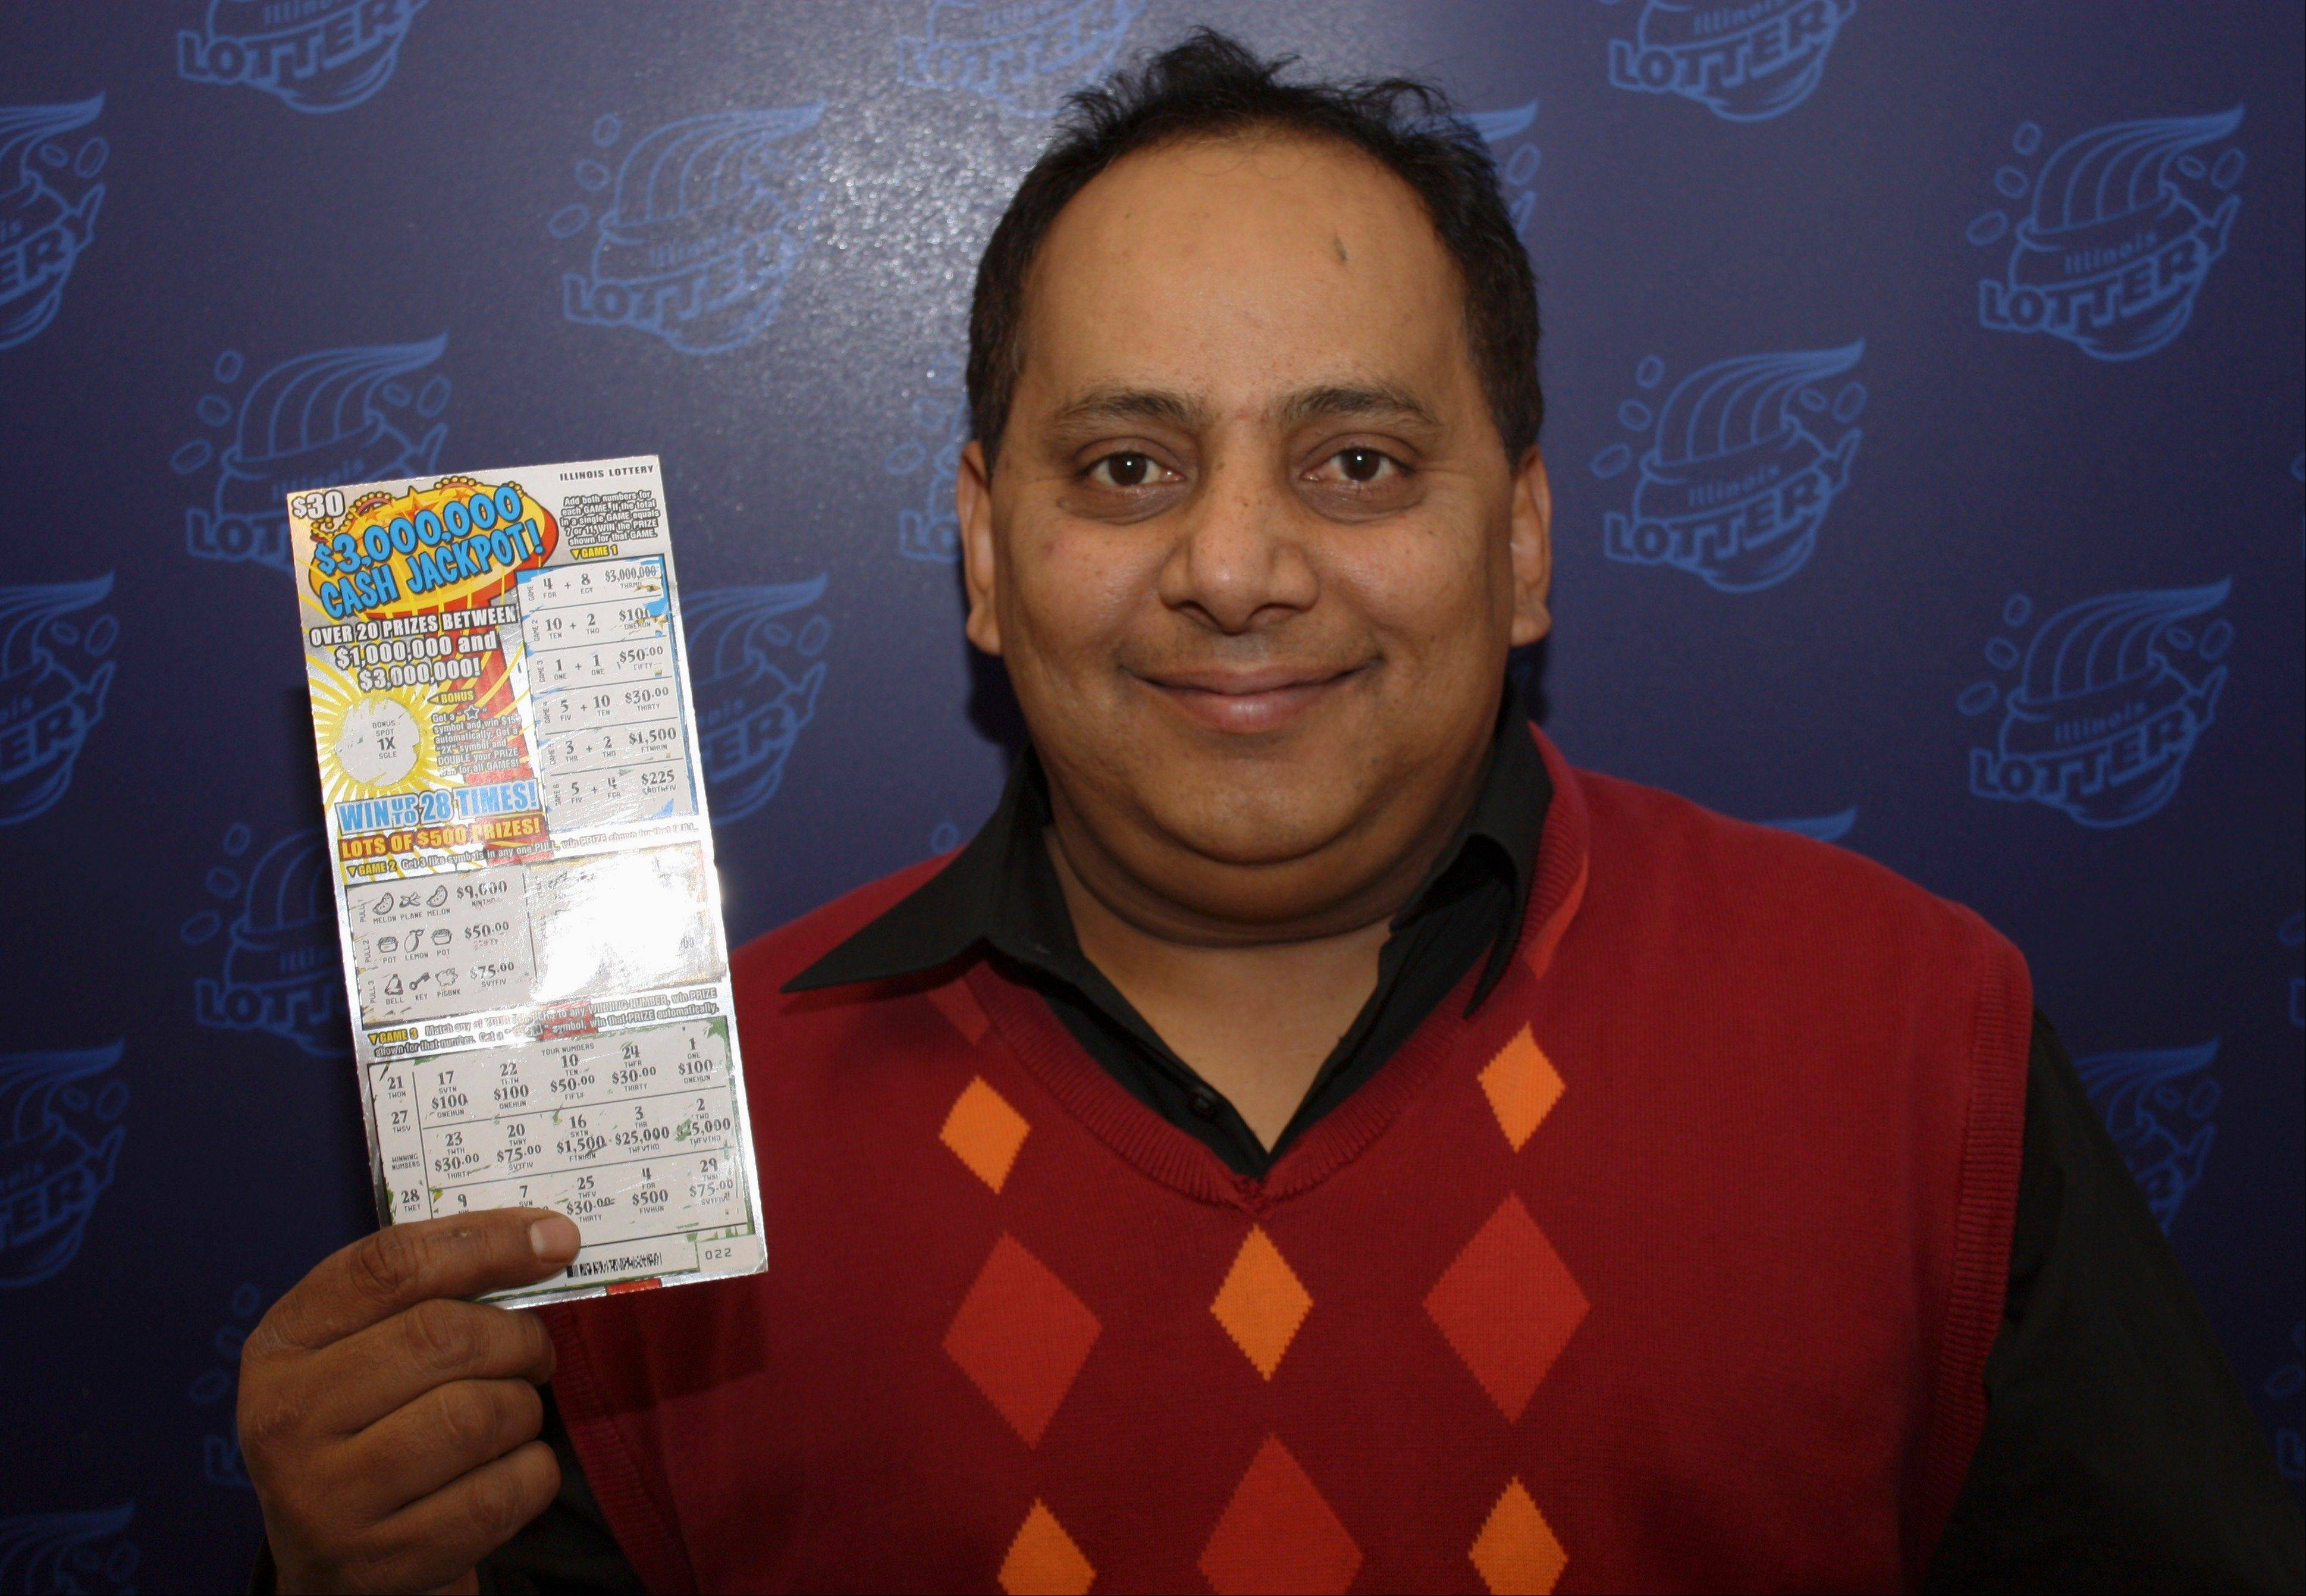 Urooj Khan, 46, poses with a winning instant lottery ticket over the summer. He died July 20.